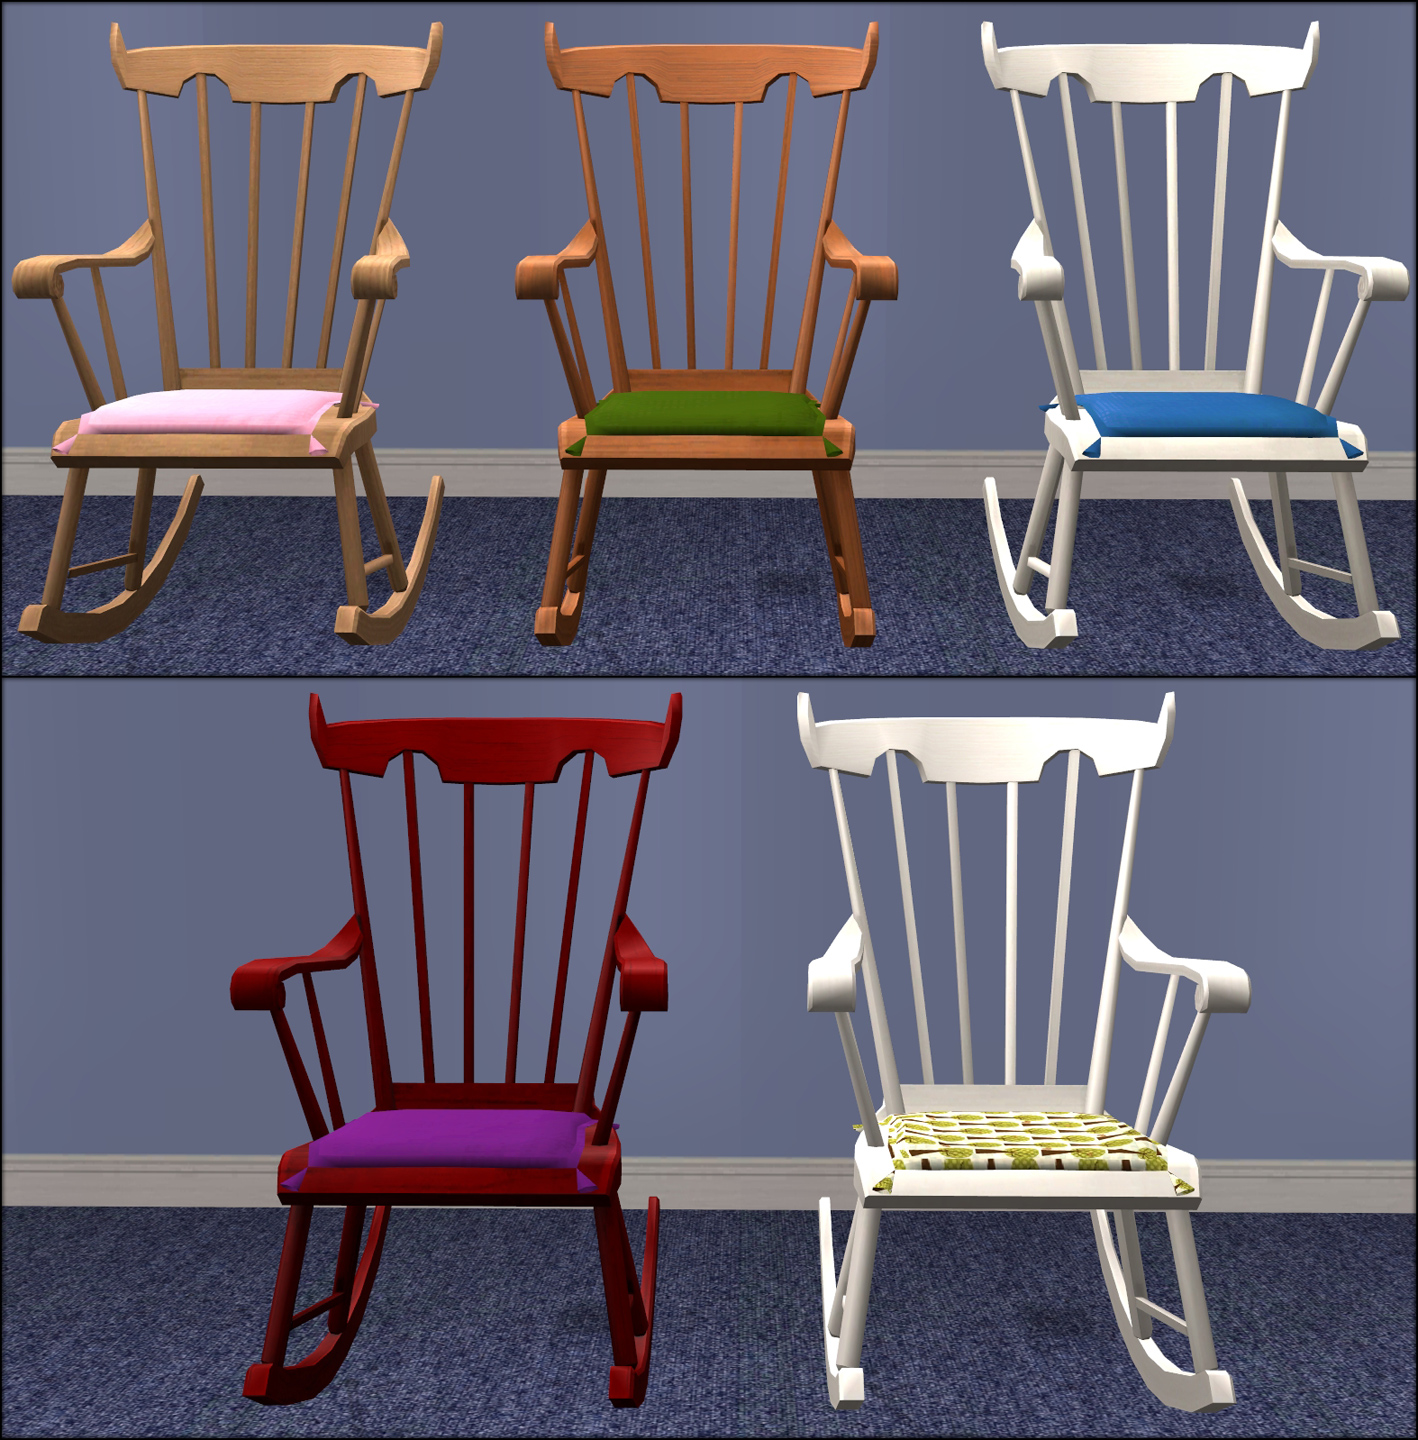 chair 1 2 black accent chairs under 100 mod the sims deluxe rockable snoozable rocking